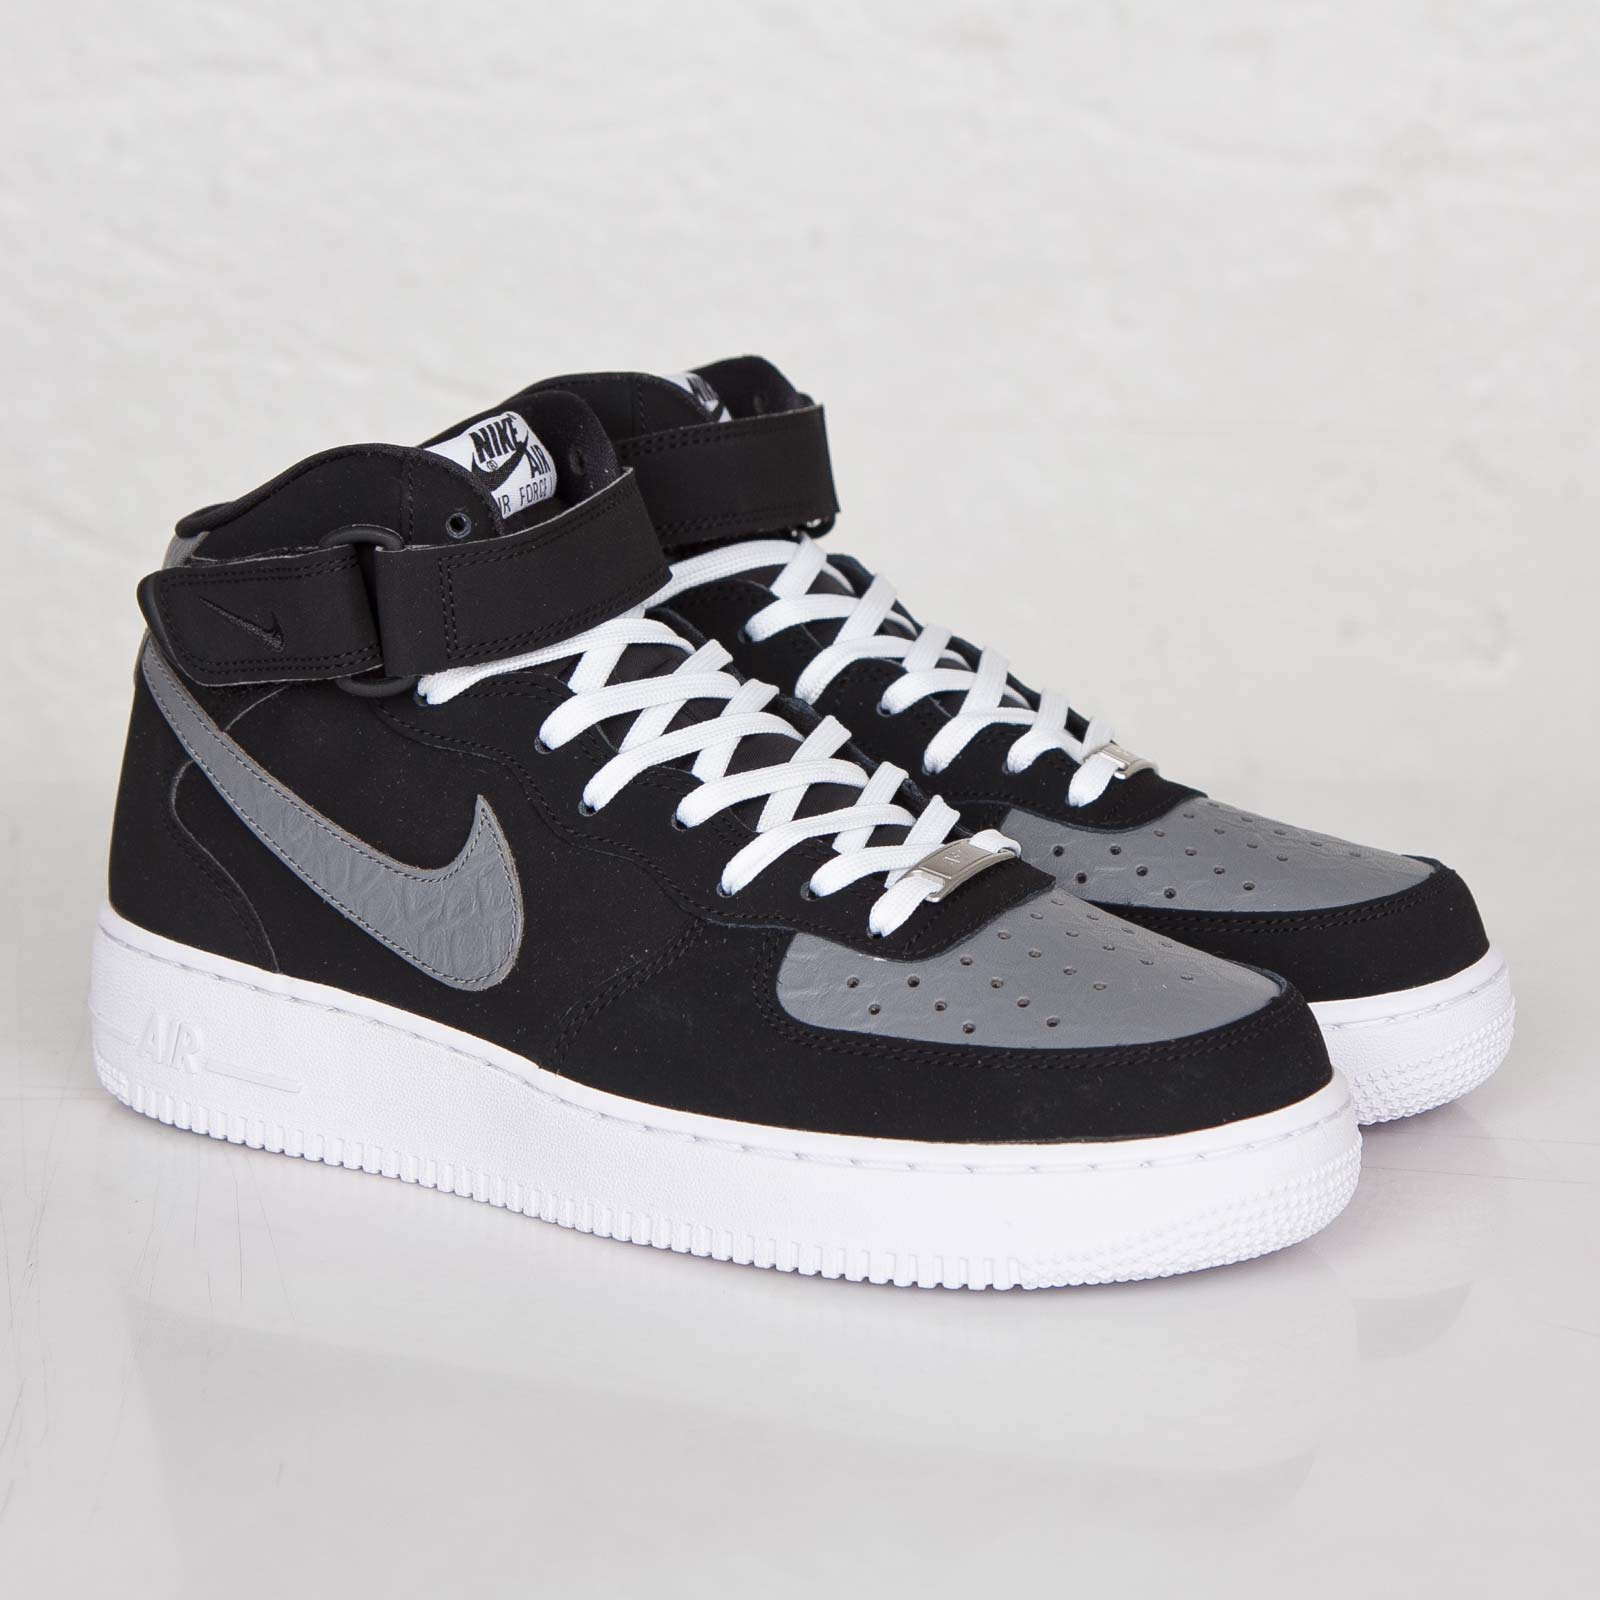 Nike Air Force 1 Mid 07 - 315123-025 - Sneakersnstuff  74df83aac9